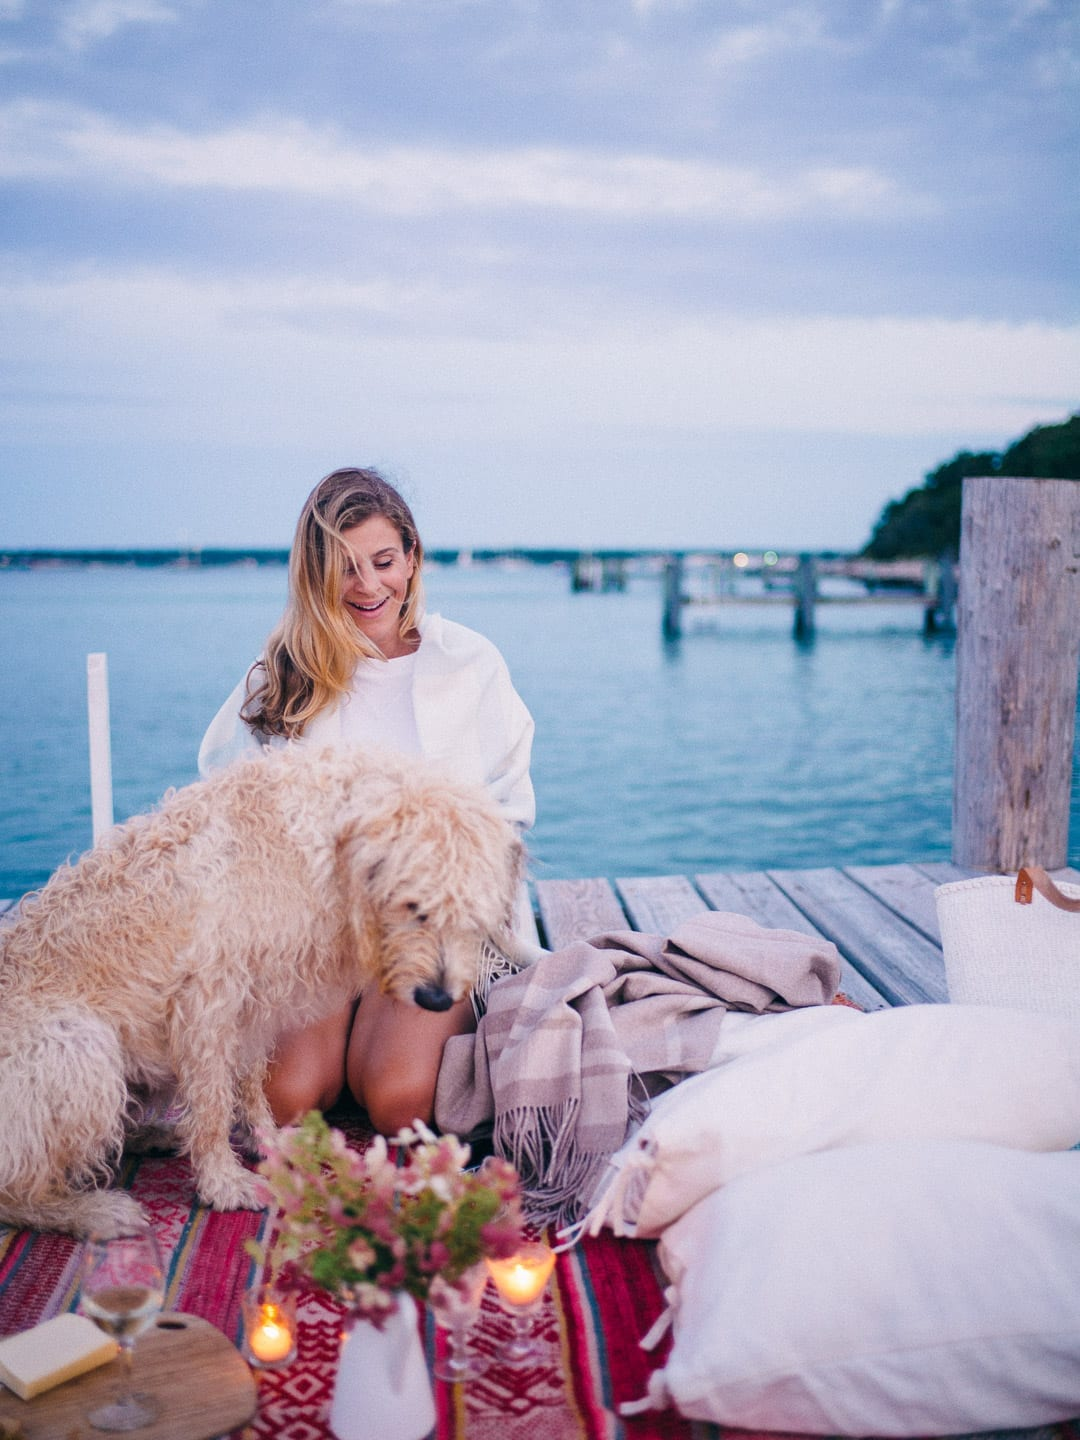 Lucy Cuneo - Secrets For Winning Instagram Pictures